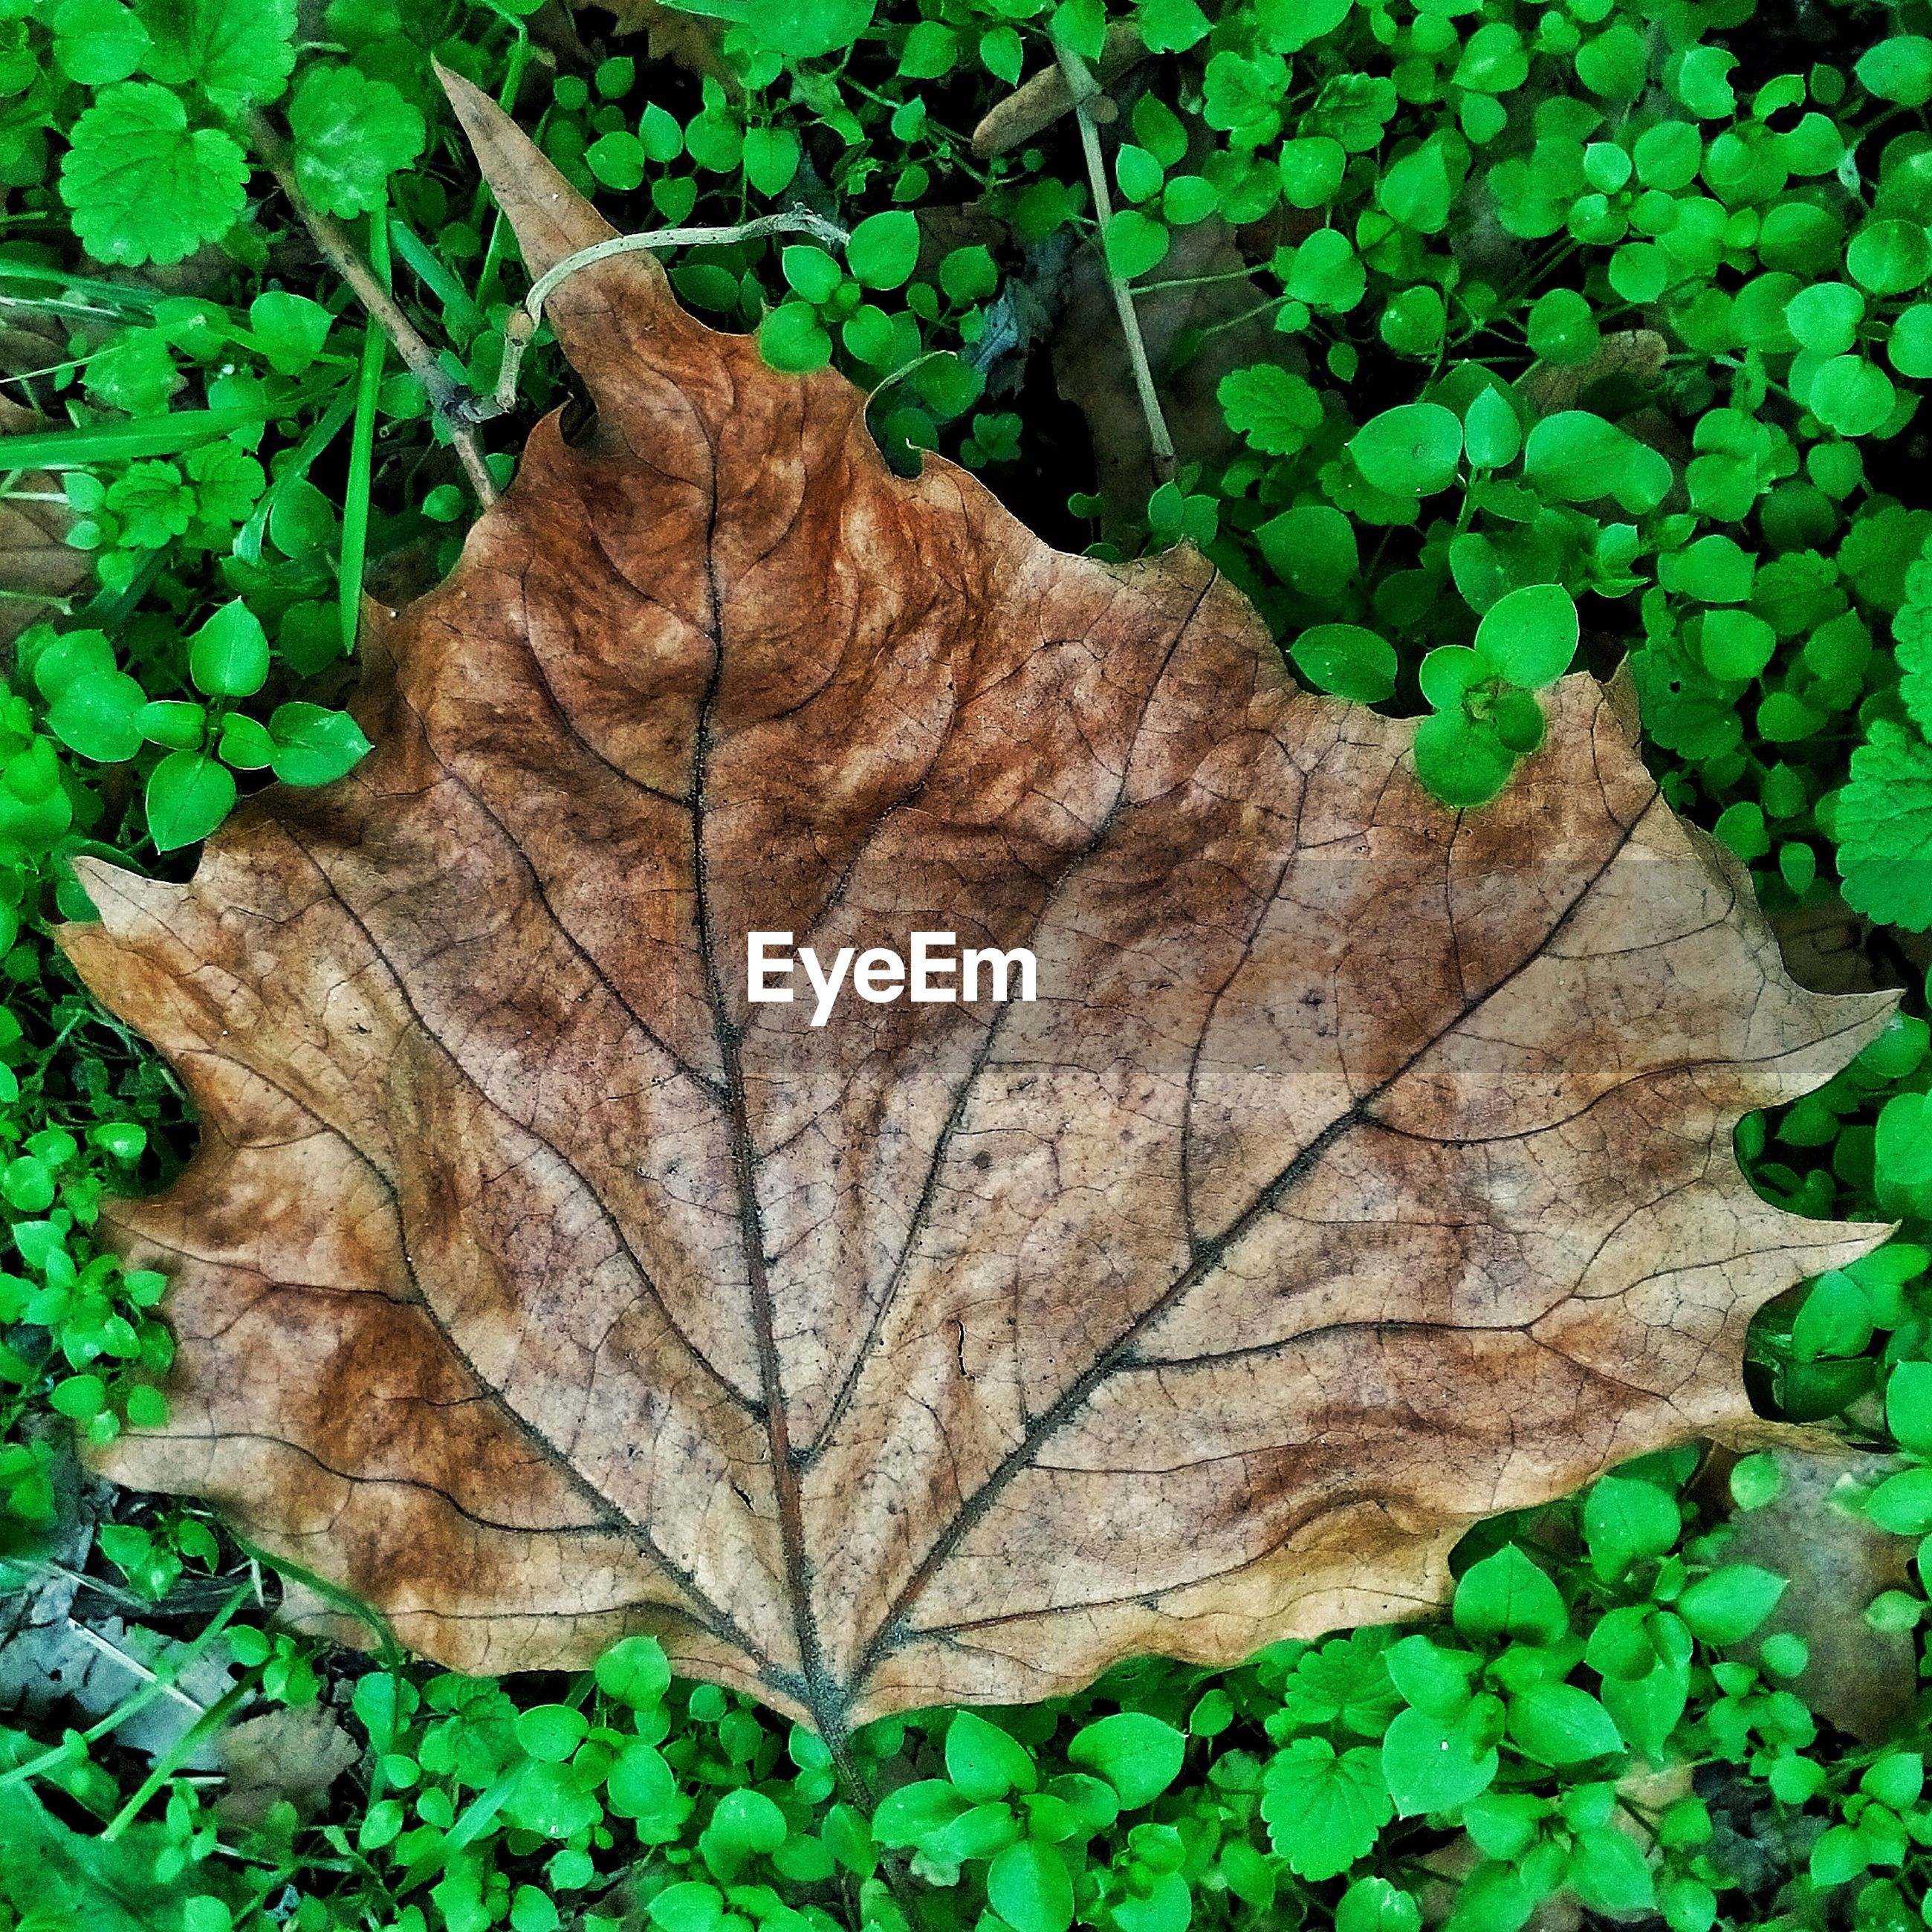 leaf, autumn, change, leaves, nature, green color, plant, dry, outdoors, day, fallen, directly above, fragility, maple leaf, close-up, no people, maple, dead plant, forest, beauty in nature, tree